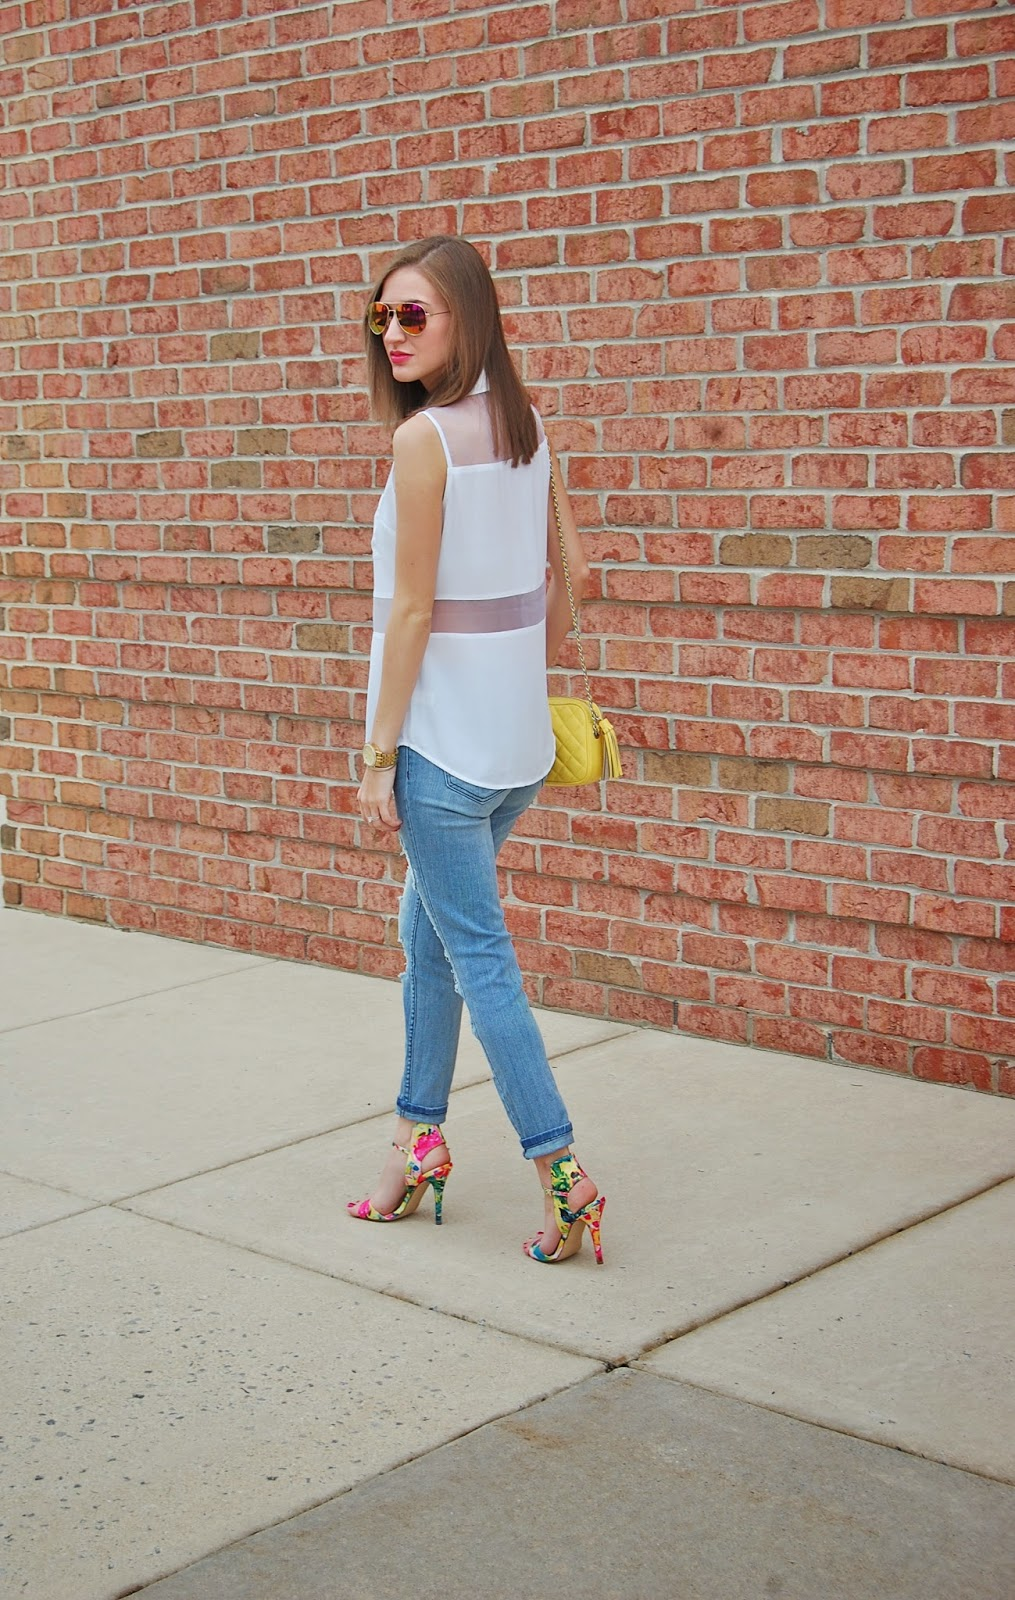 Wearing Express Organza Inset Sleeveless Portofino Shirt, STS Blue from Nordstrom destroyed boyfriend jeans, Mix No 6 cameo multi color sandal, Rebecca Minkoff yellow flirty studded crossbody